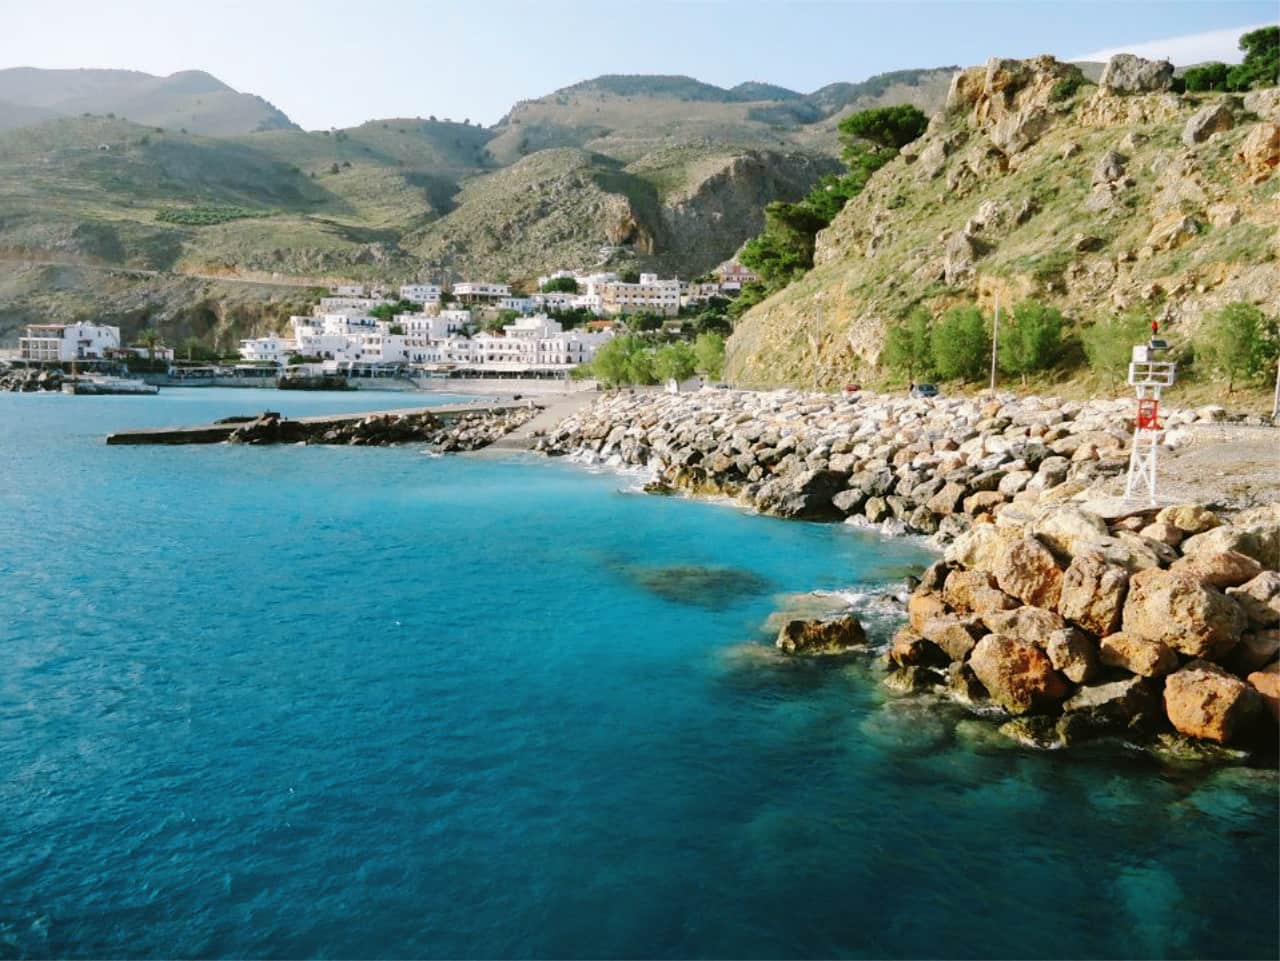 Full Day Boat Trip To Elafonissi, boat trip lissos sougia, boat trip loutro village, boat trip paleochora crete, best boat trips south crete, boat trip to kedrodasos elafonisi, boat trip south chania crete, best boat trip activities sfakia crete, sfakia activities